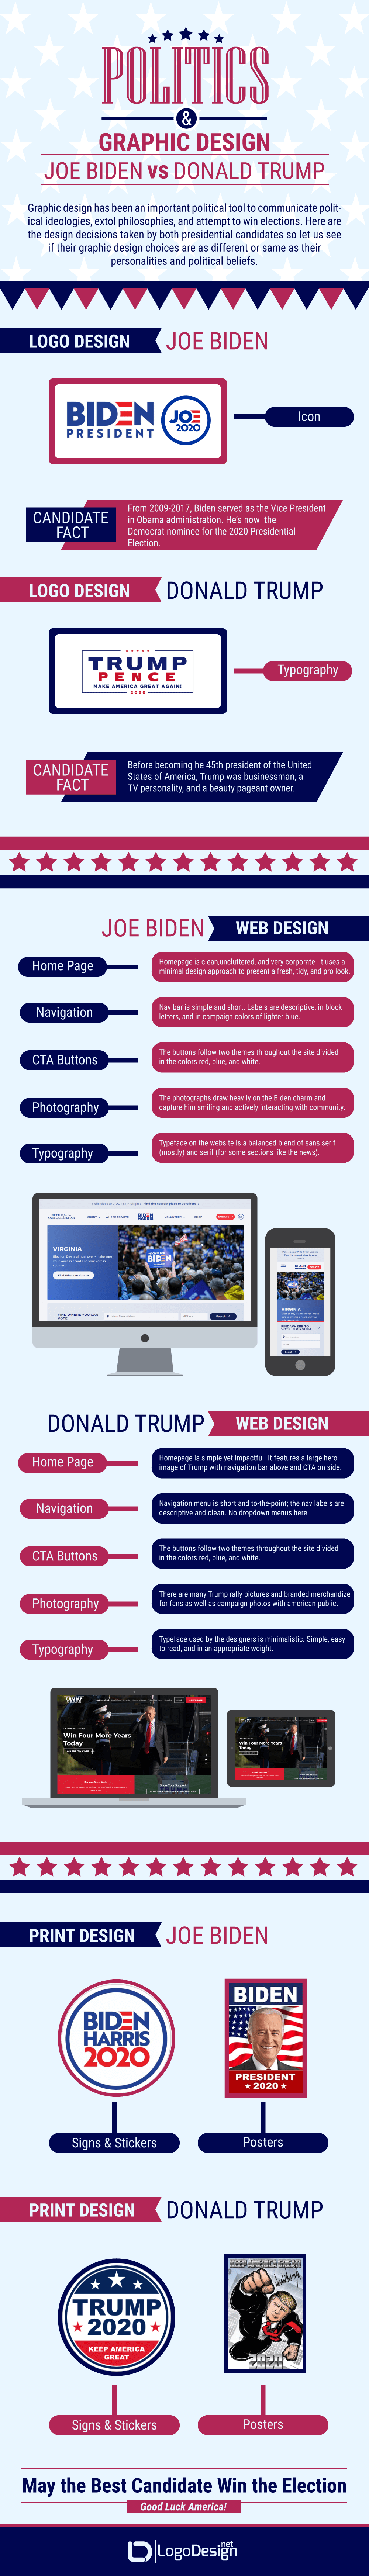 Graphic Designs in Politics: Biden vs. Trump Campaigns